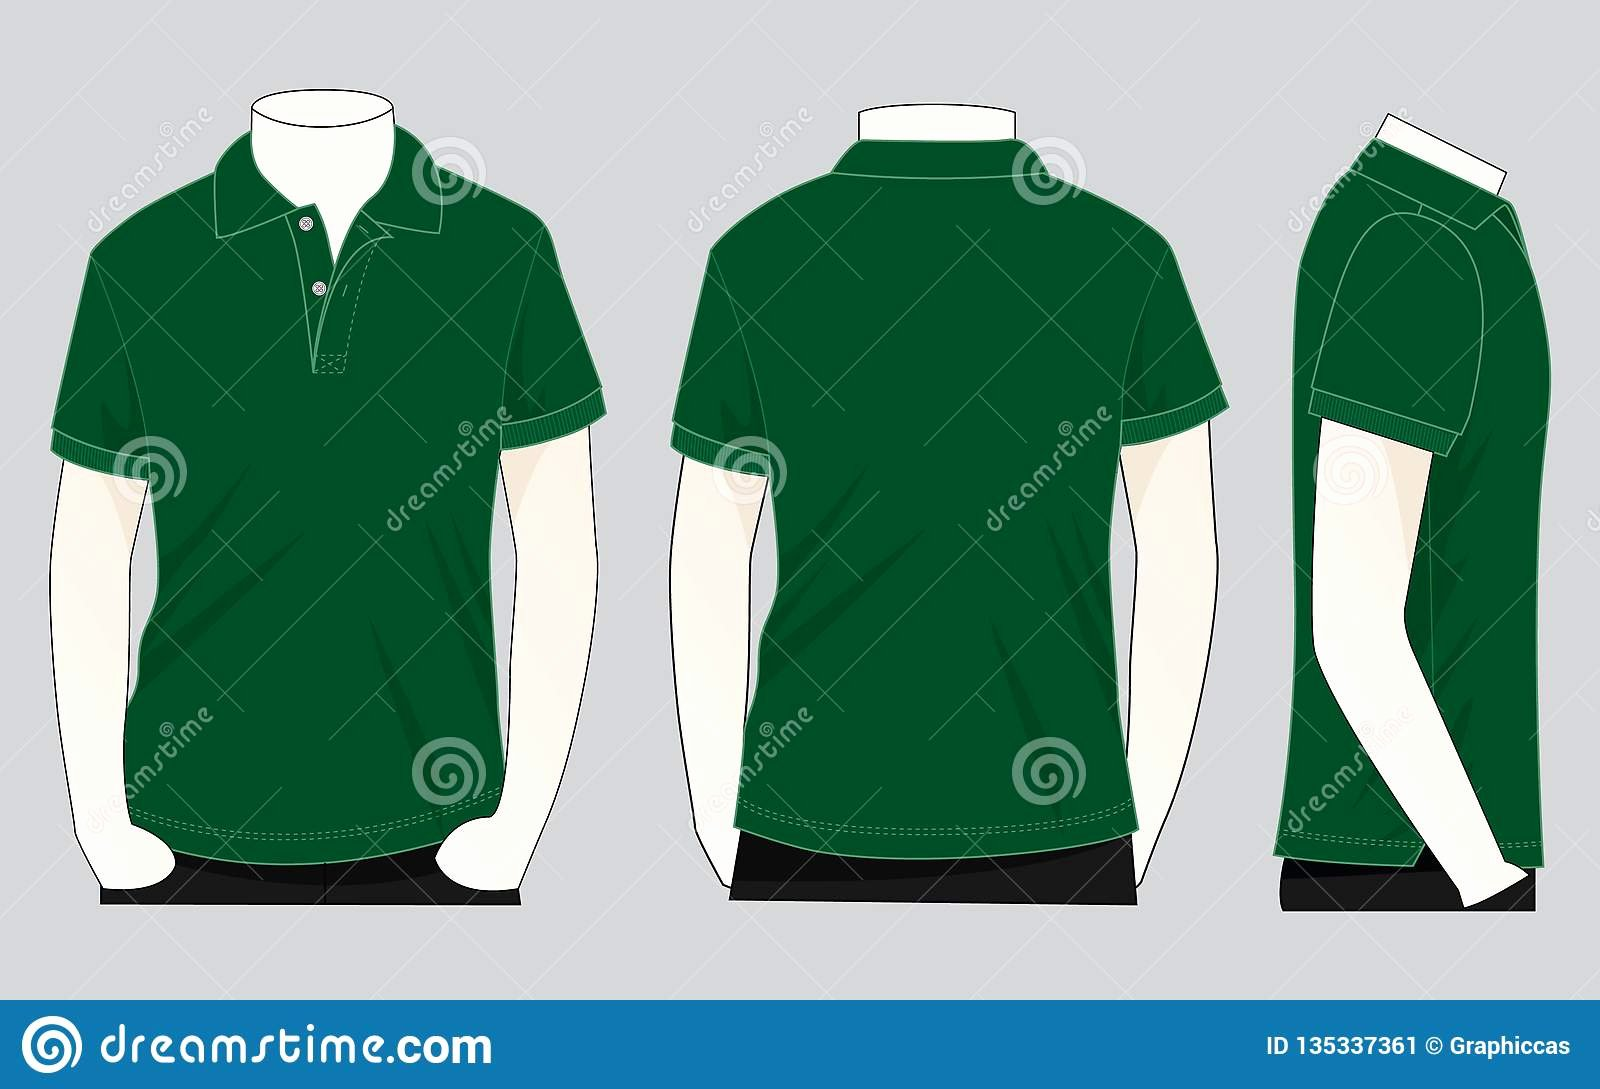 Green T Shirt Template Fresh Dark Green Polo Shirt Vecor for Template Stock